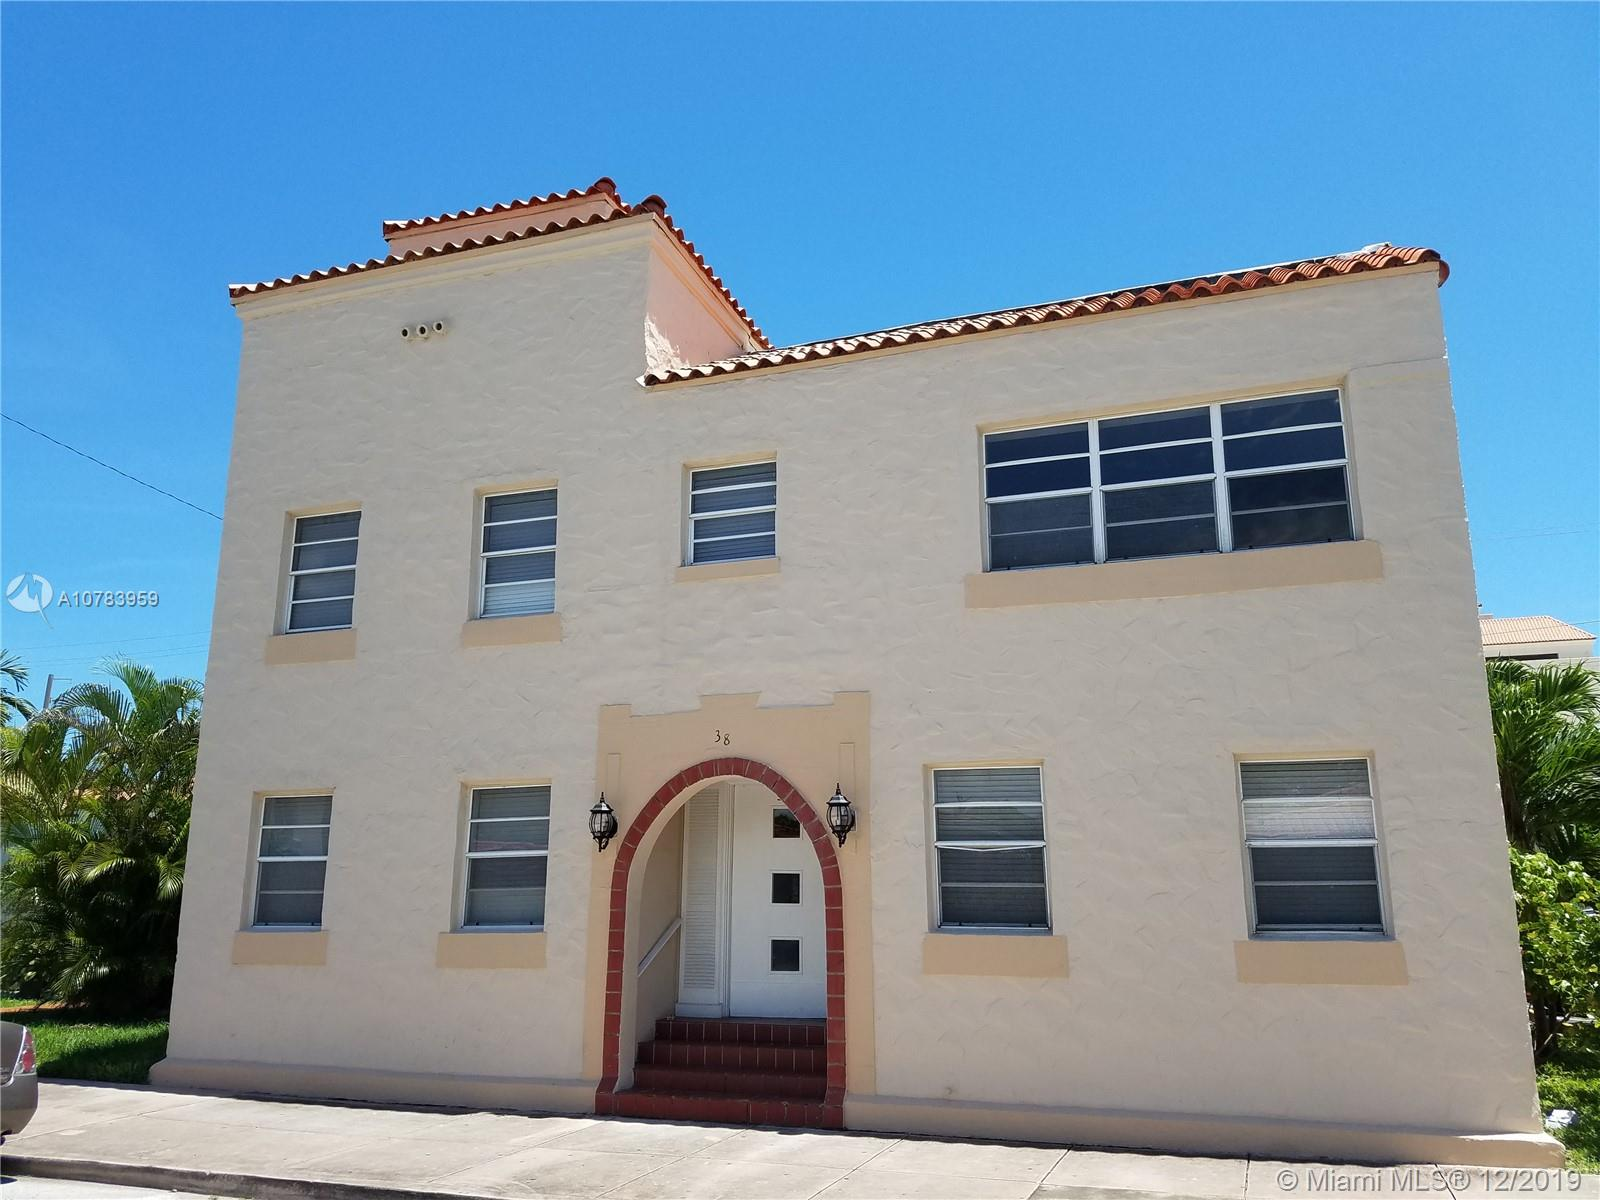 38  Oviedo Ave #4 For Sale A10783959, FL